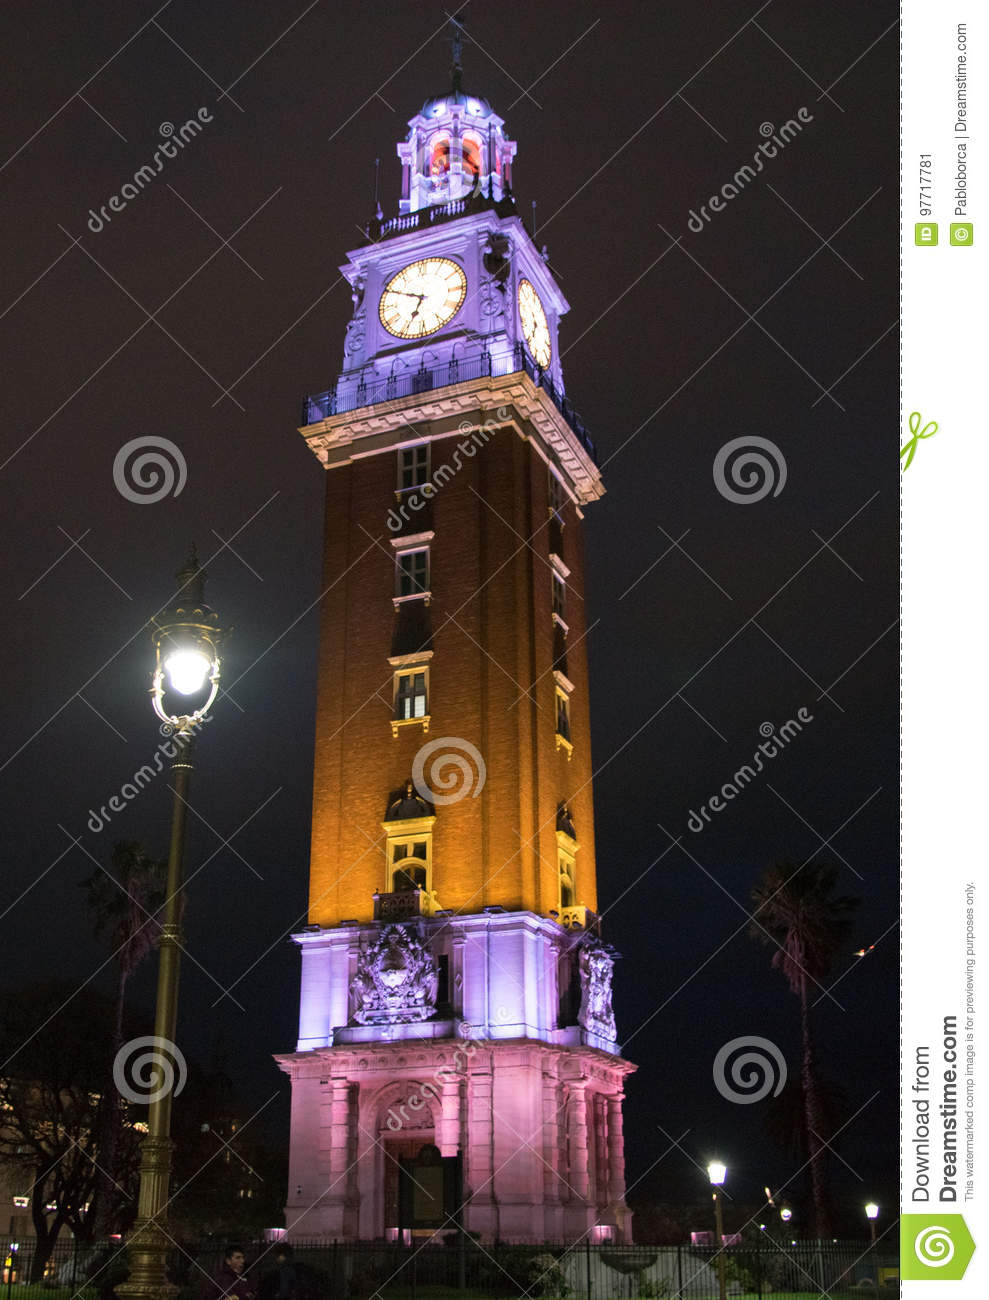 Turm Torre de Los Ingleses English nachts in Buenos Aires